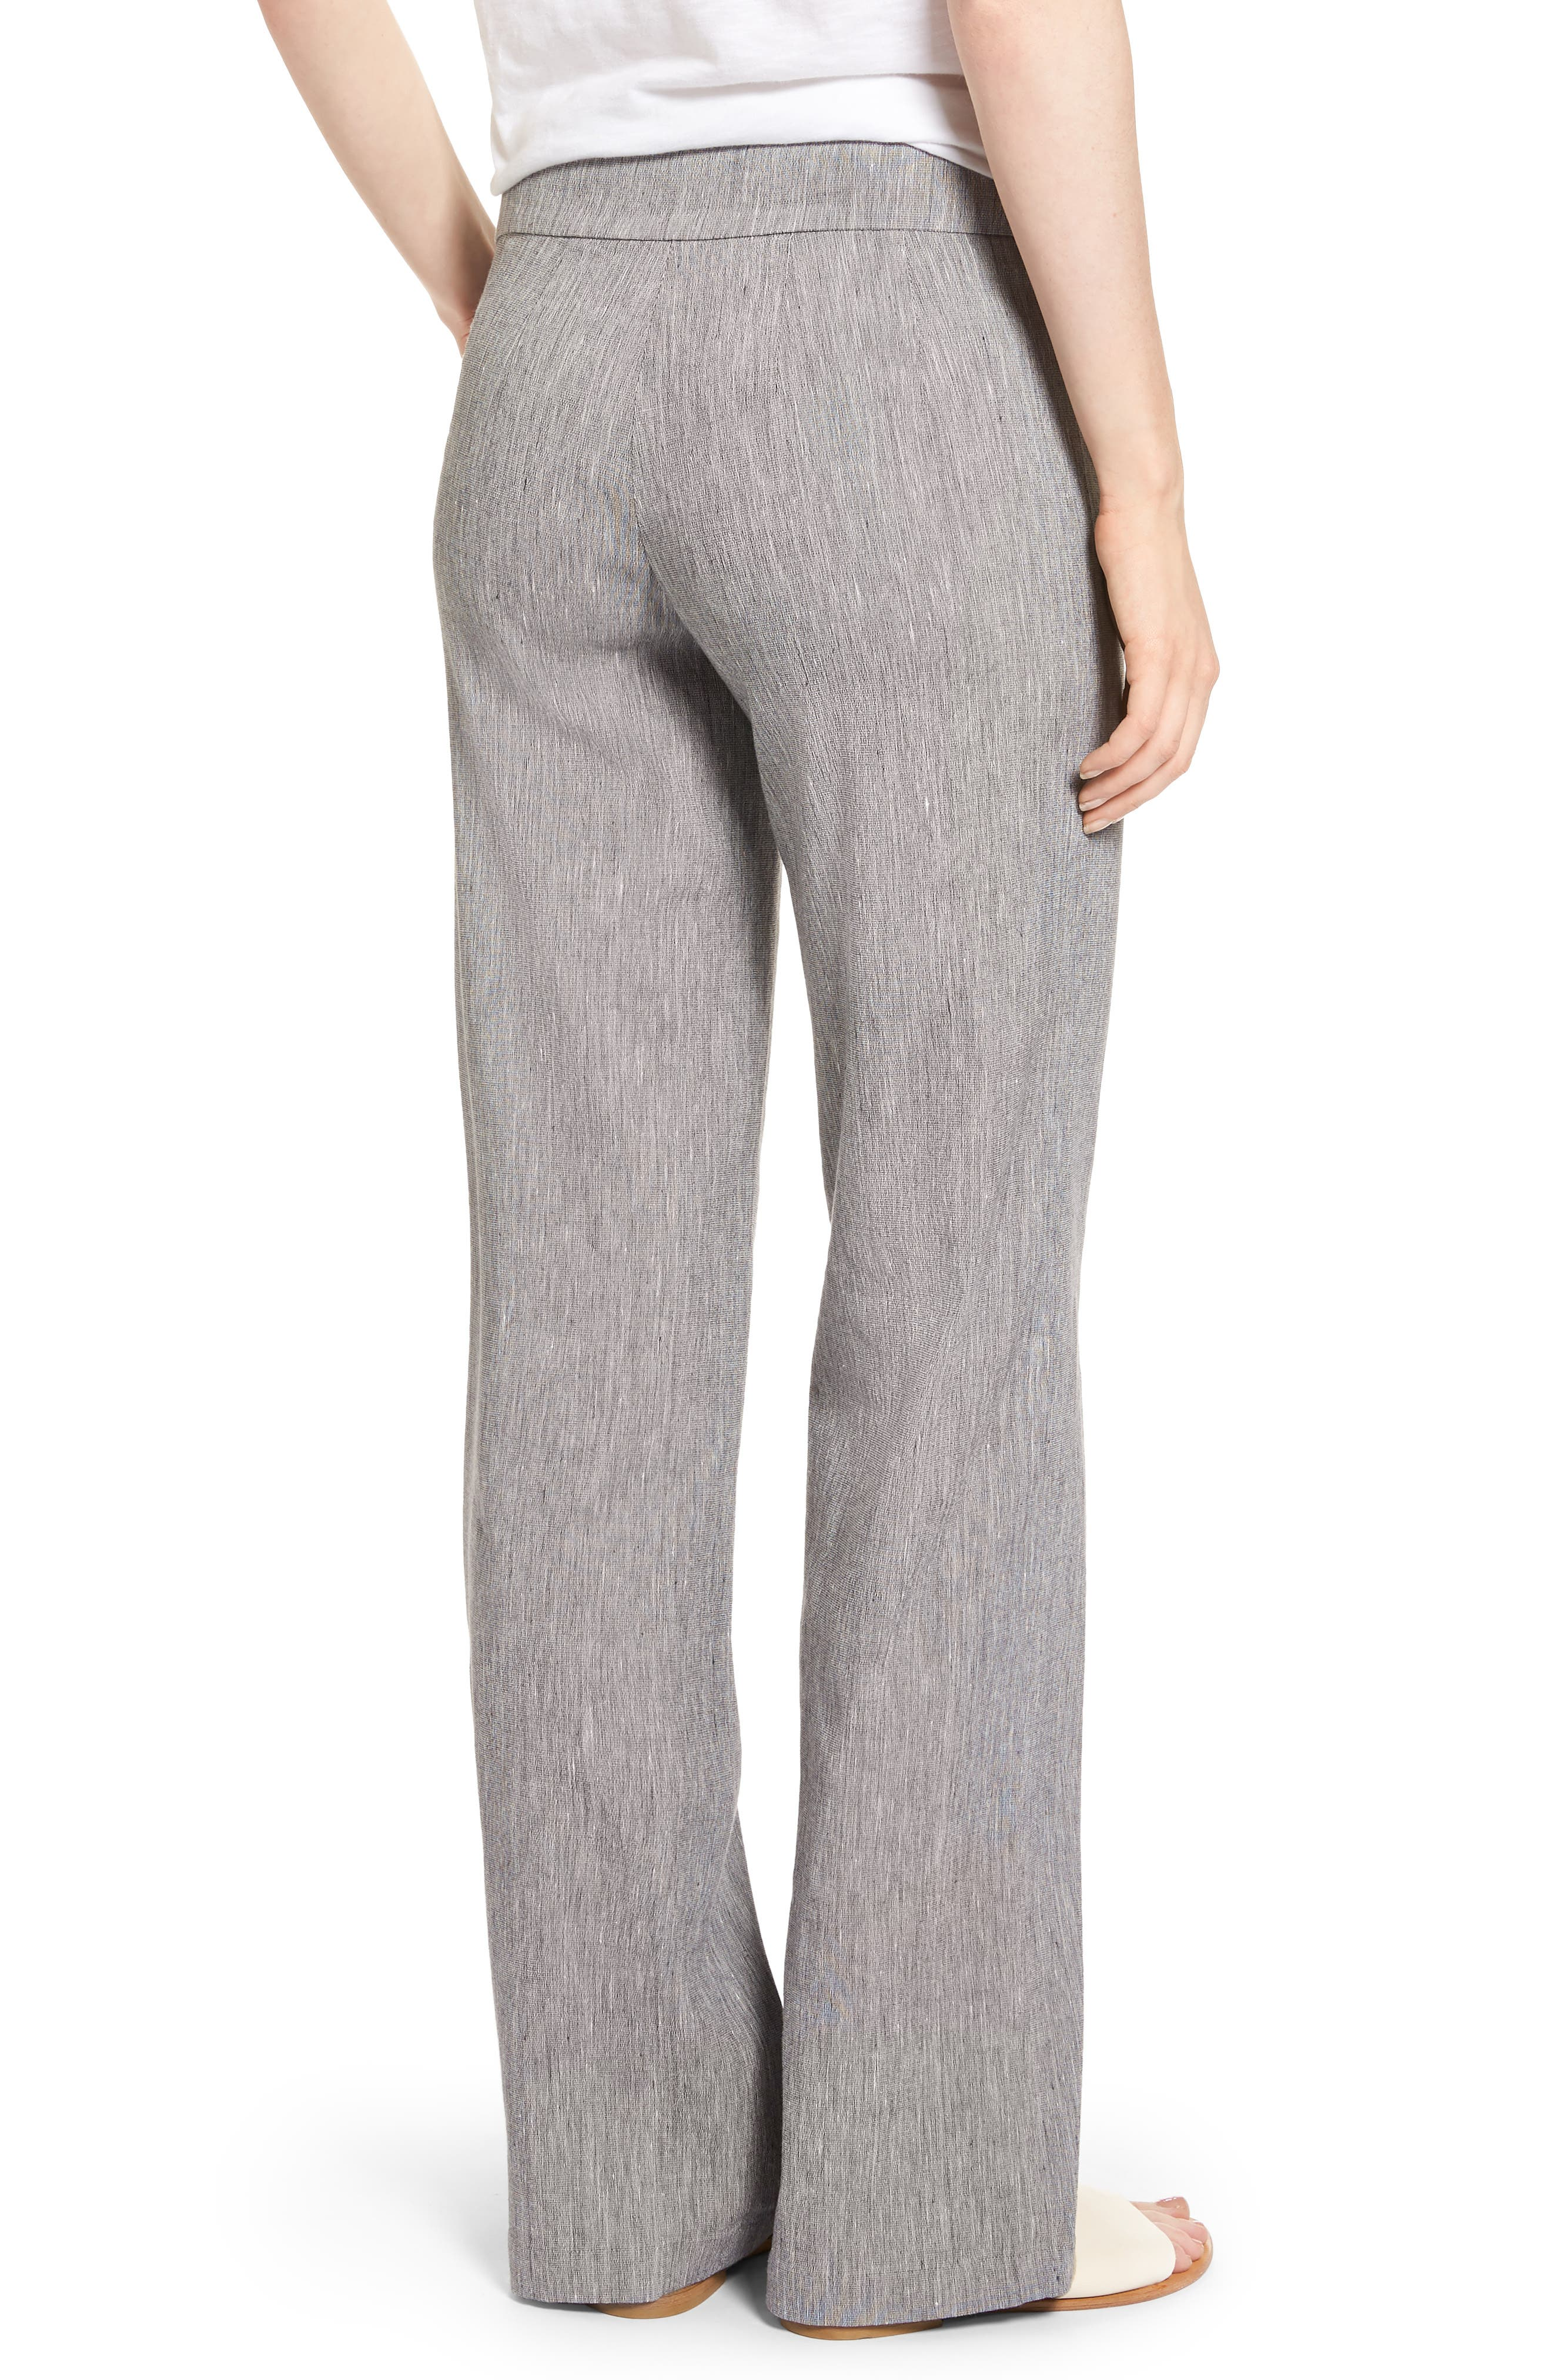 Here or There Linen Blend Pants,                             Alternate thumbnail 2, color,                             099